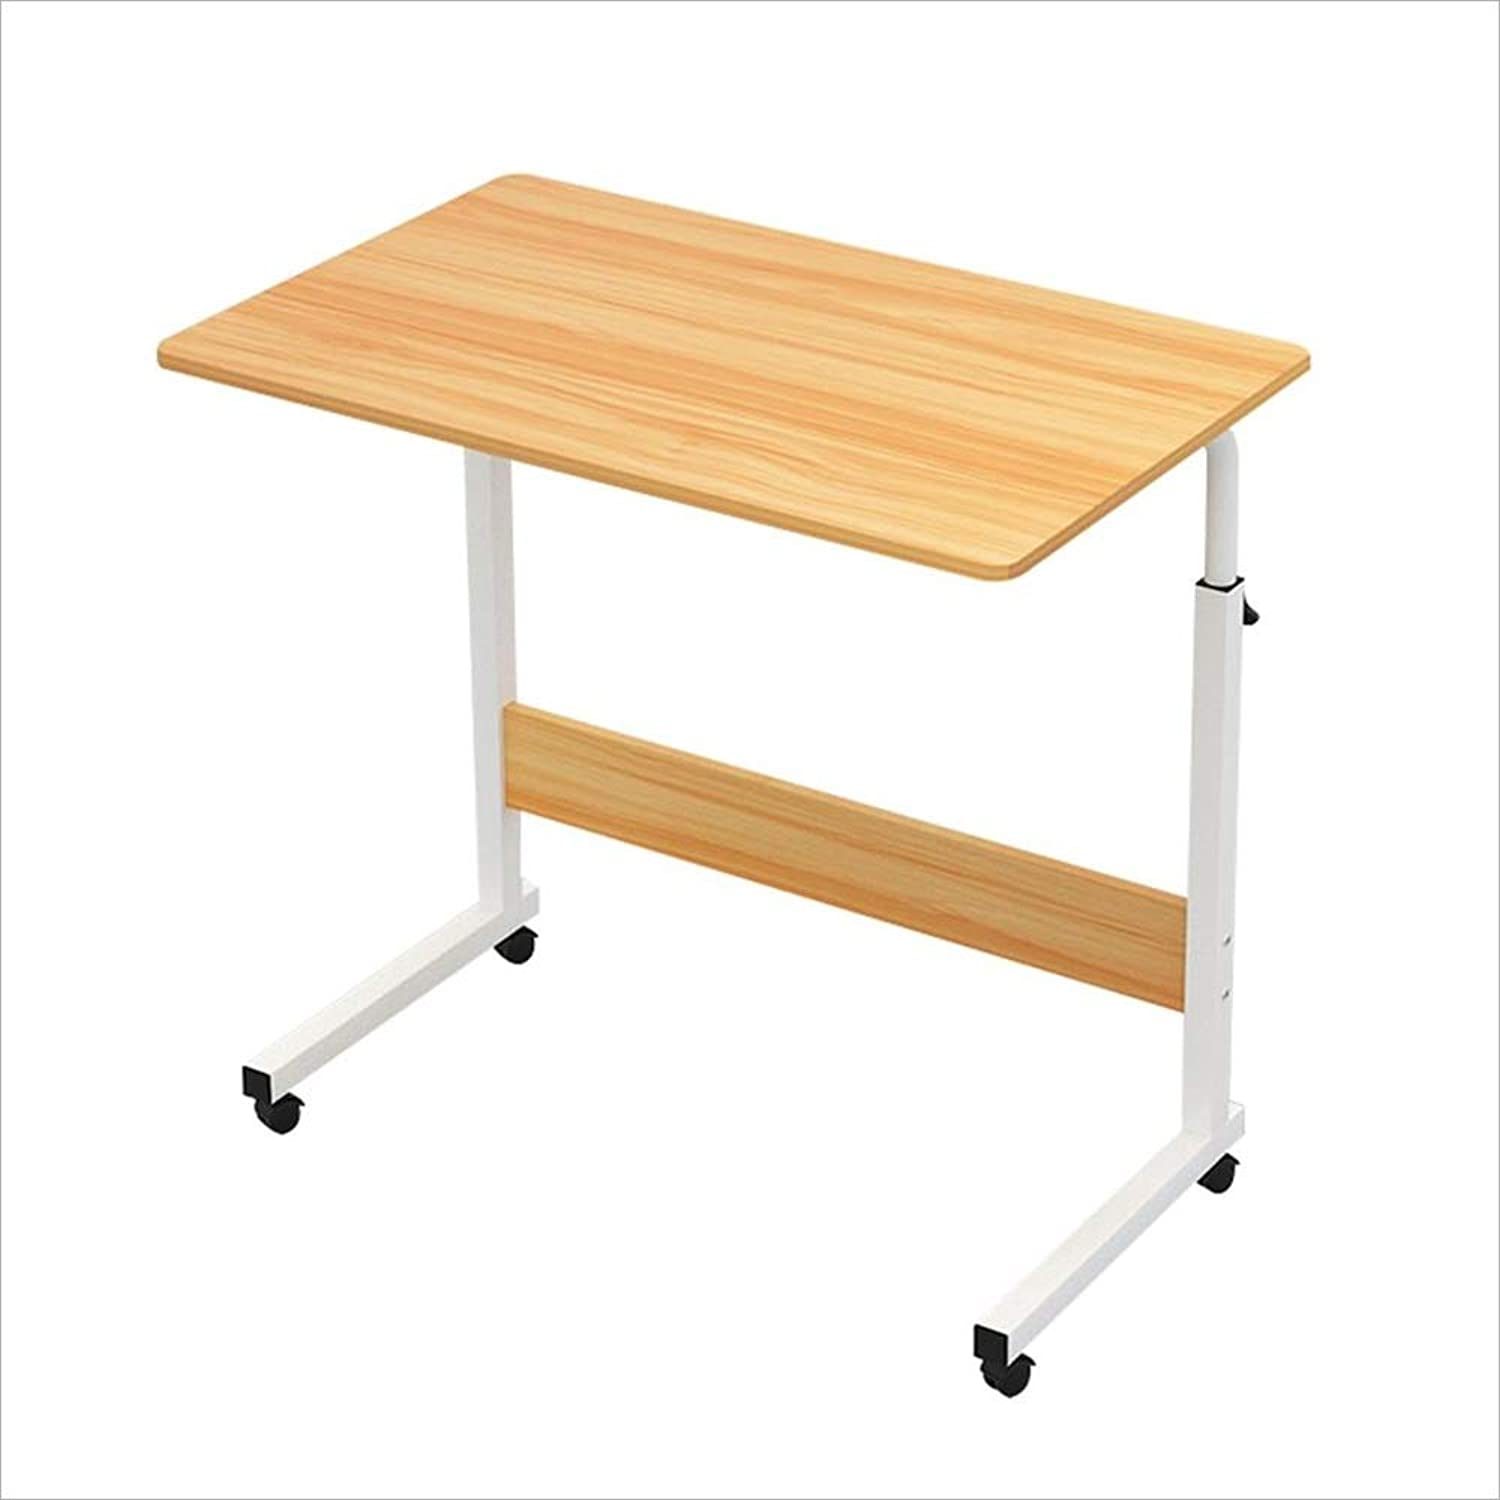 NAN Laptop Table Bed Desk Simple Bedside Table Student Lift Table Dormitory Lazy Table Folding Tables